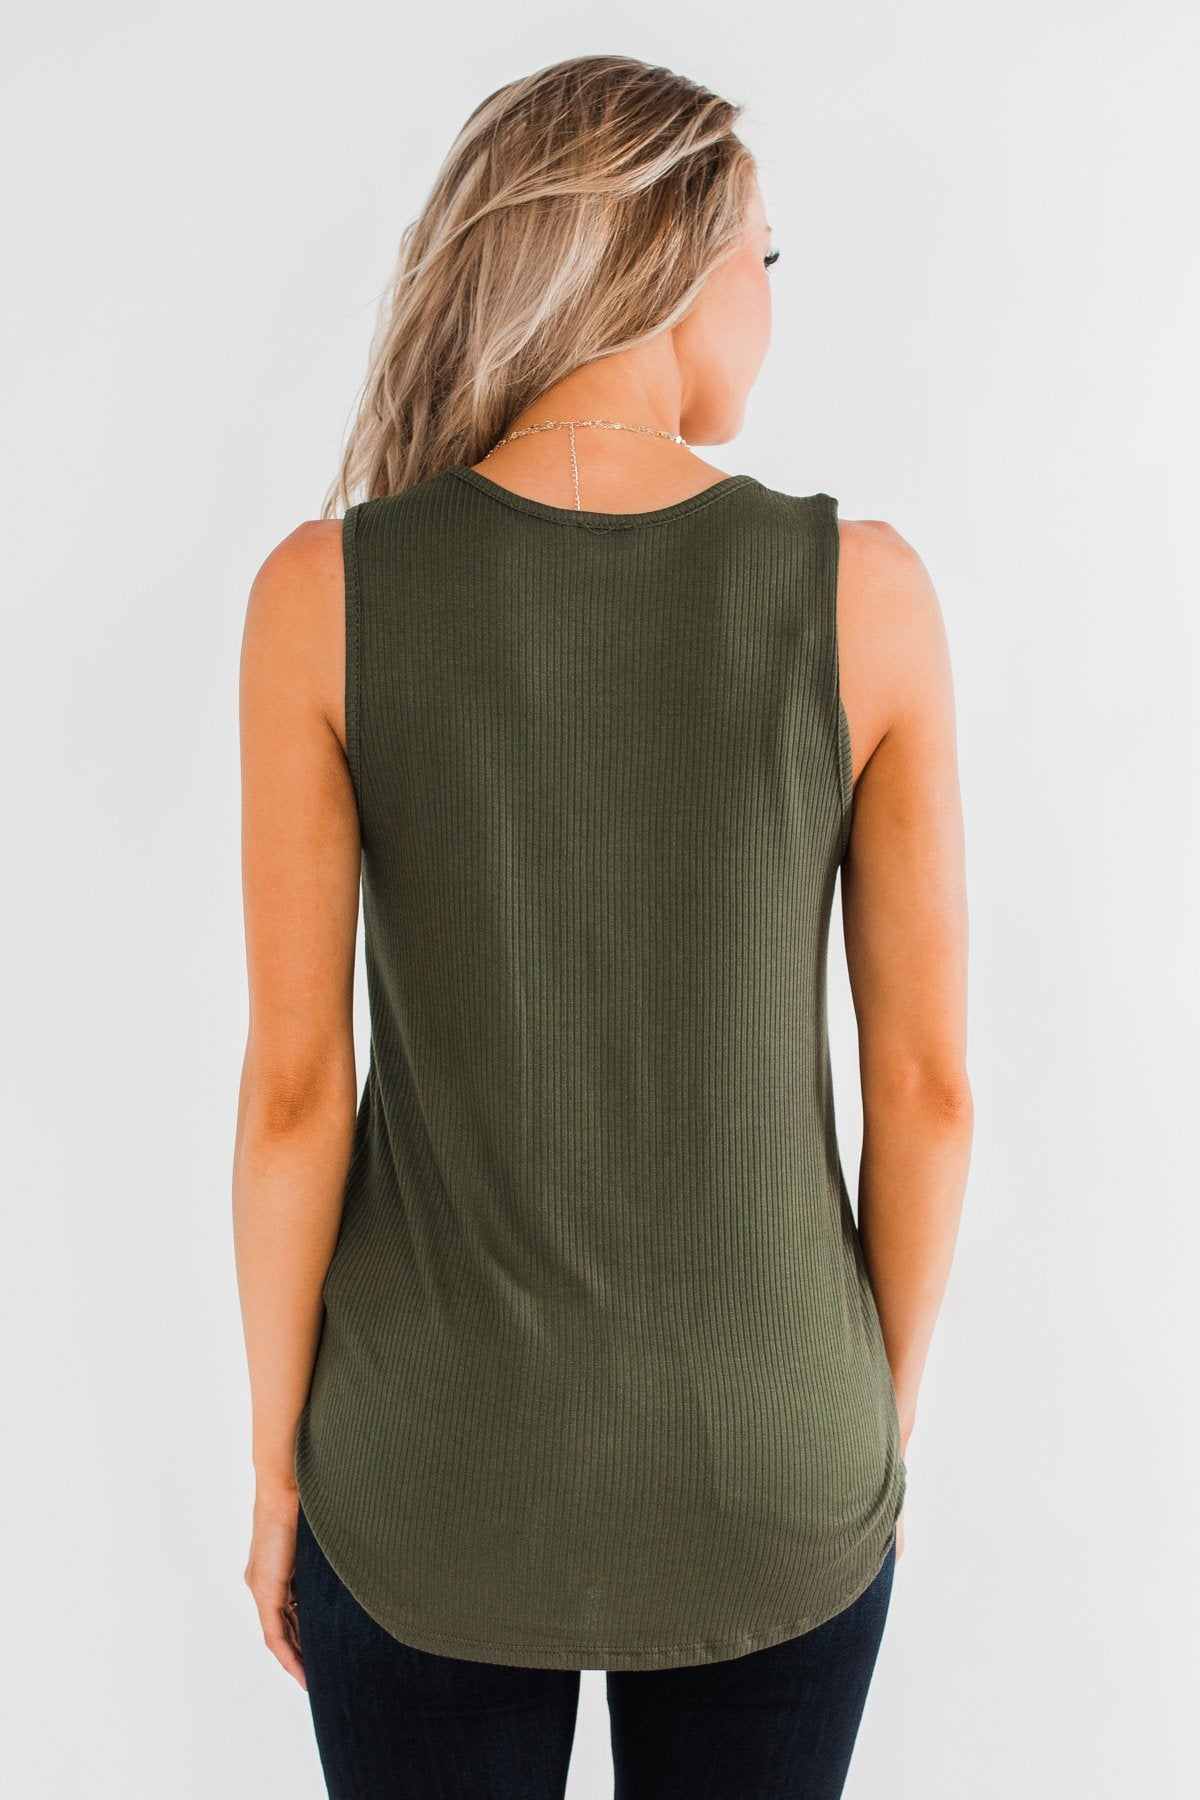 Just Say The Word 3 Button Tank Top- Dark Olive